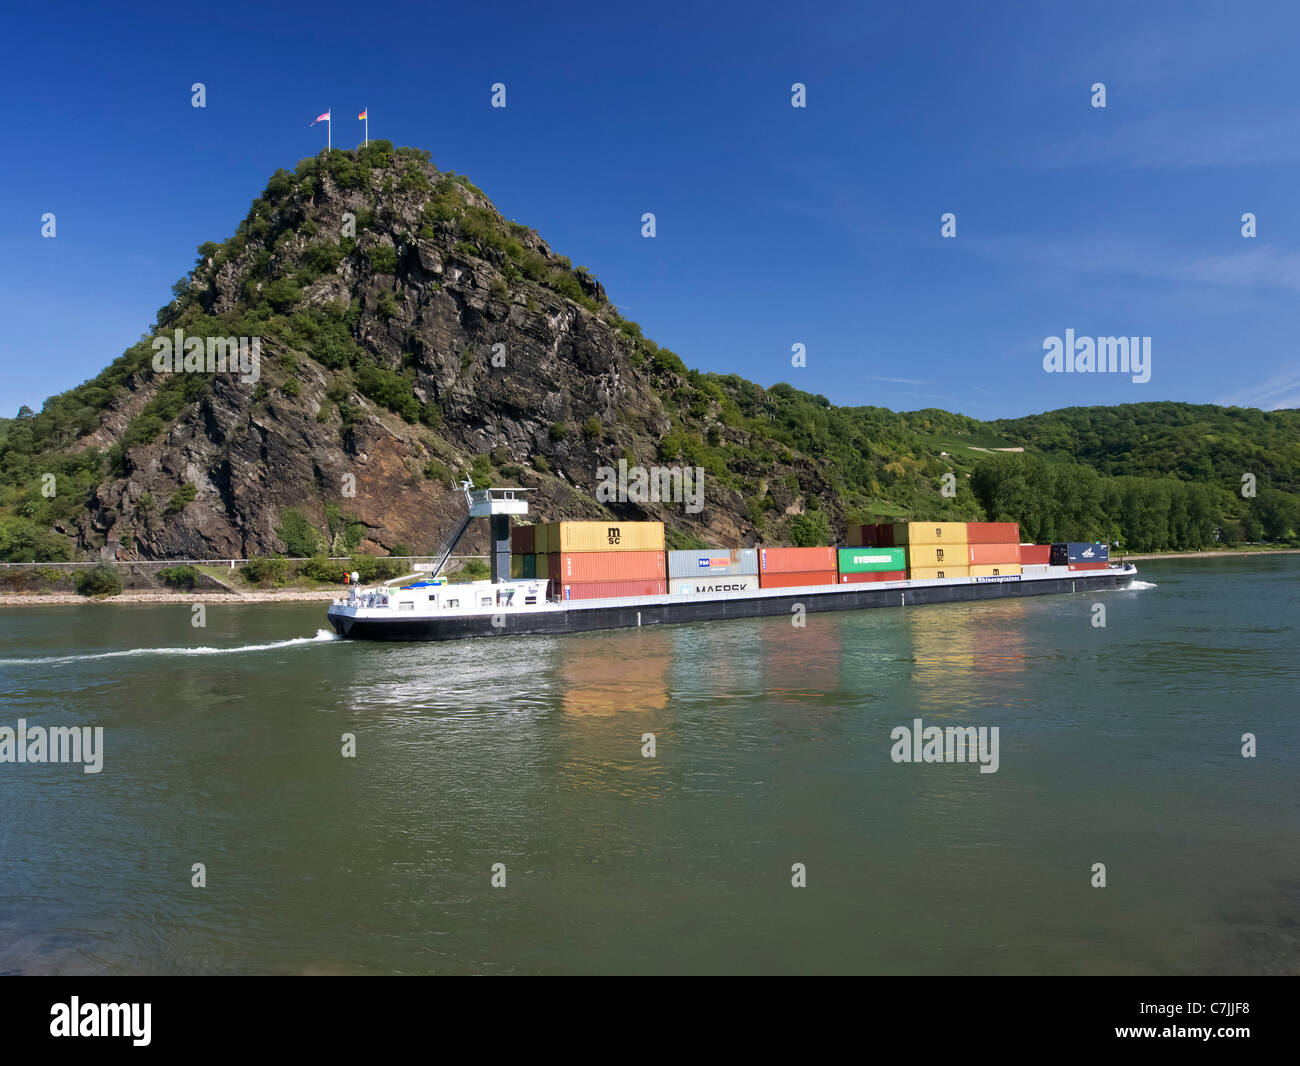 Large barge carrying container freight passes Loreley rock on River Rhine in Germany - Stock Image